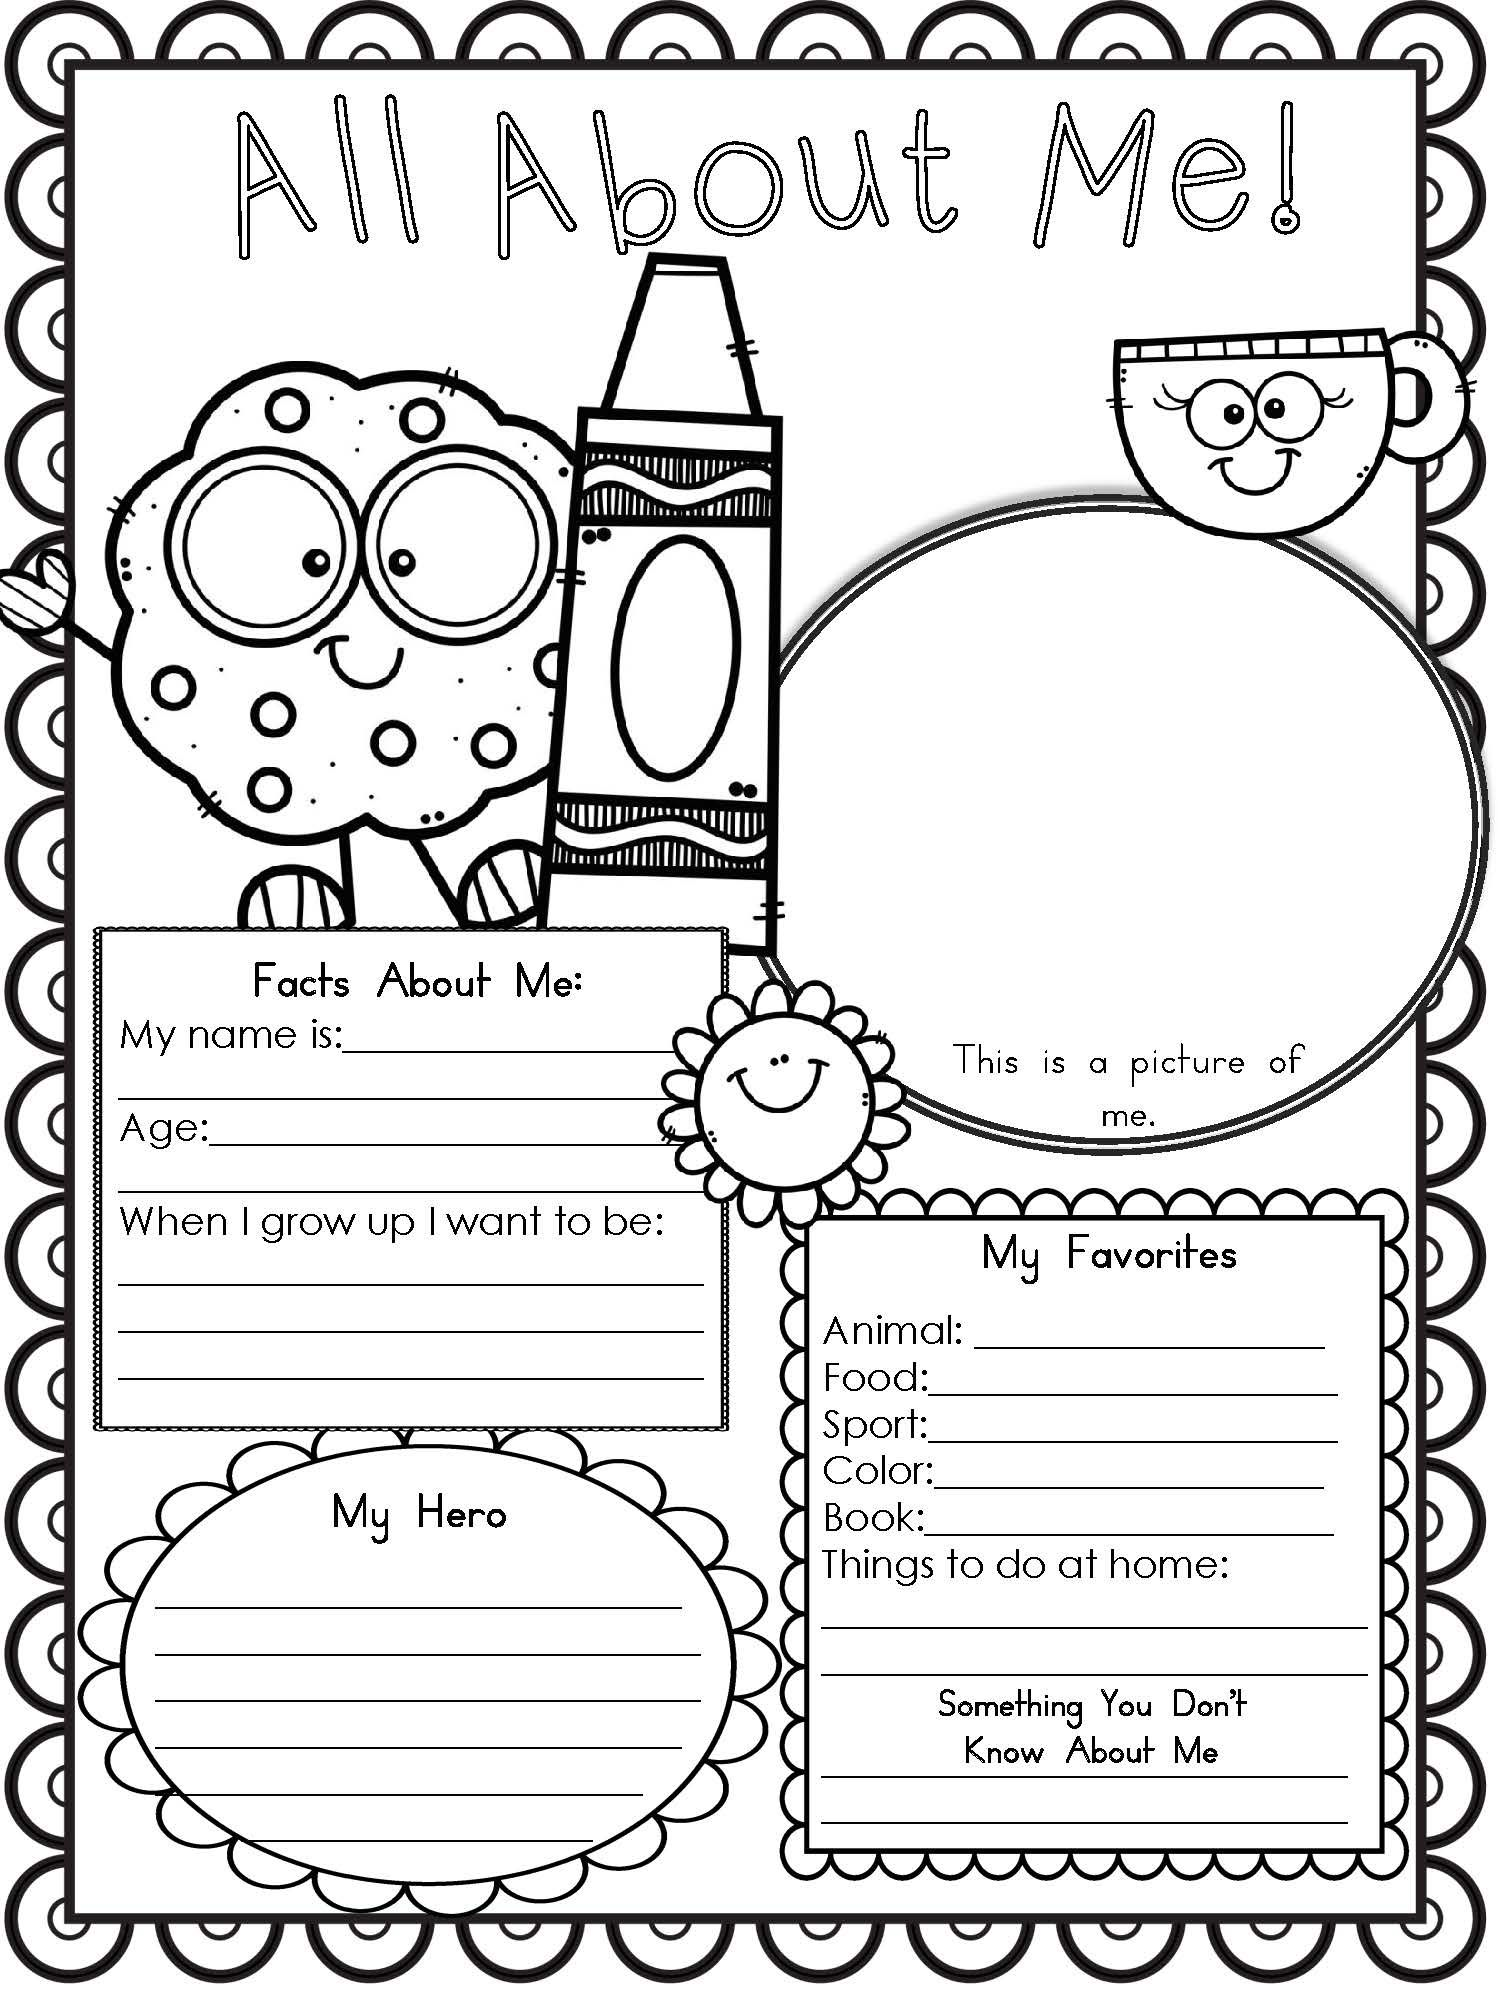 Candid image with regard to all about me free printable